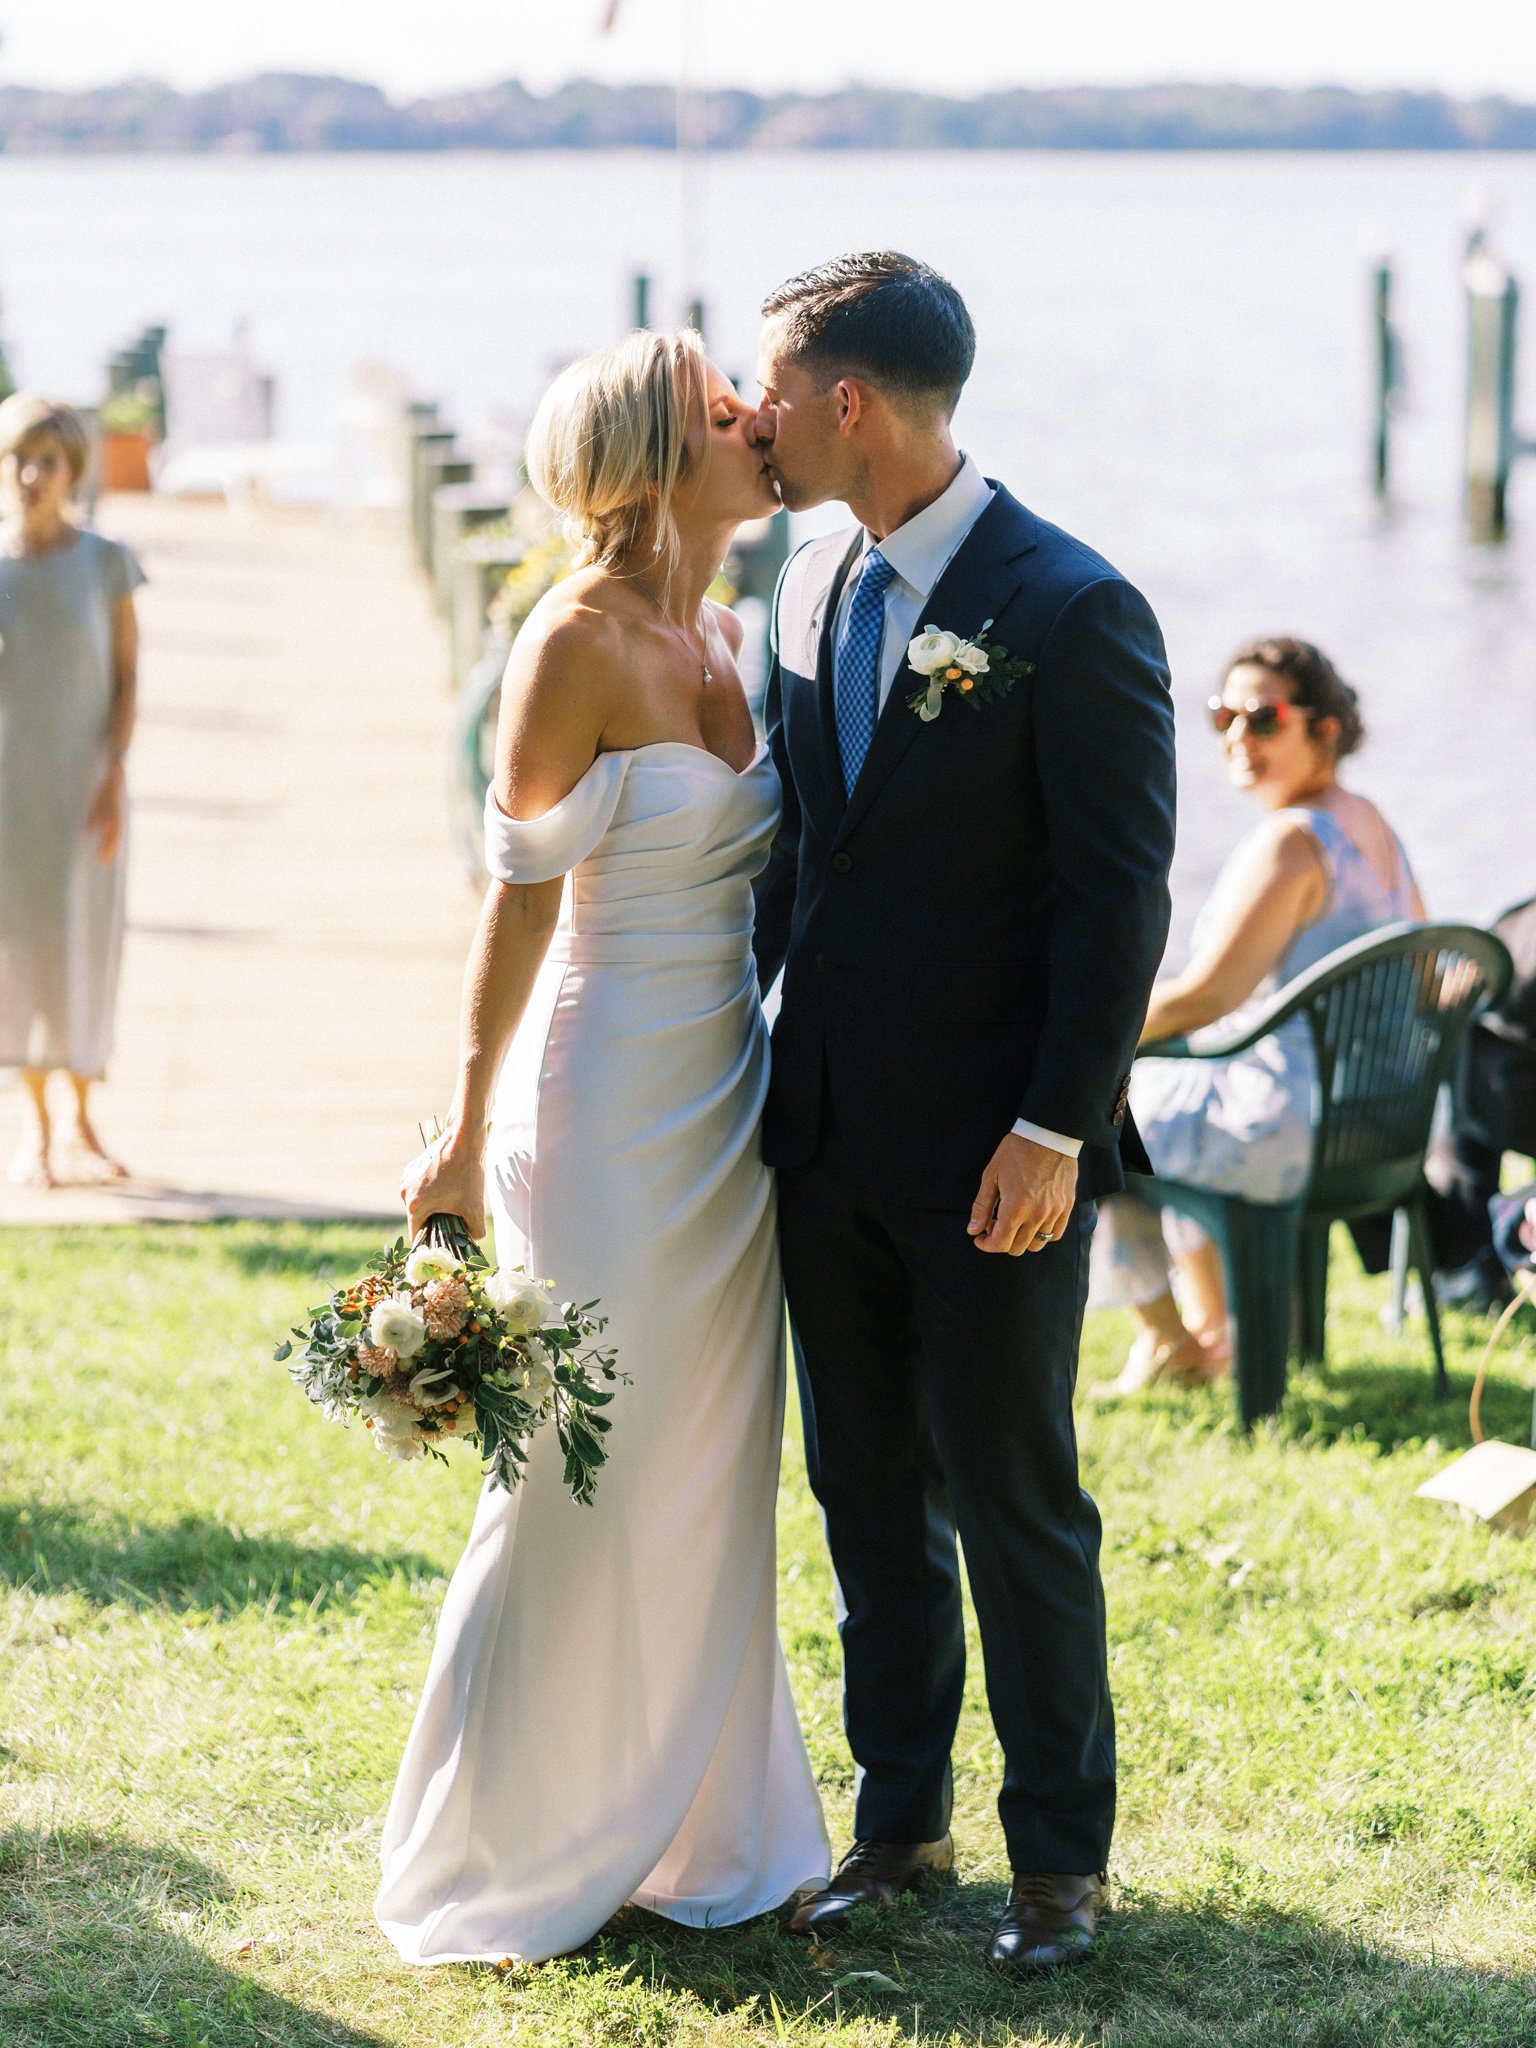 Gray_Joiner_e. losinio photography_annapolis-maryland-waterfront-elopement-194